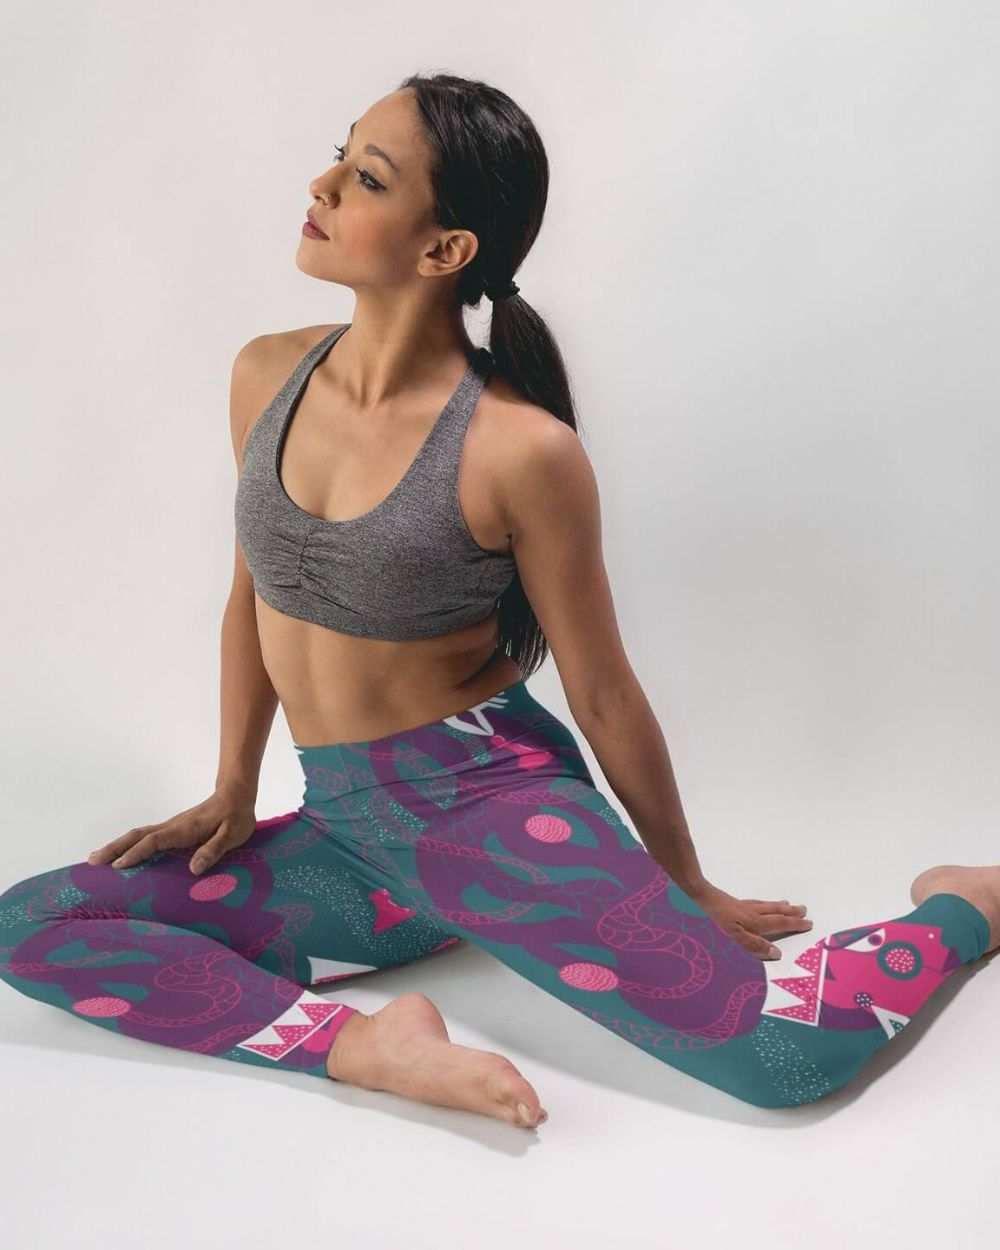 RADICAL x WASABI 'The OTHER' Leggings